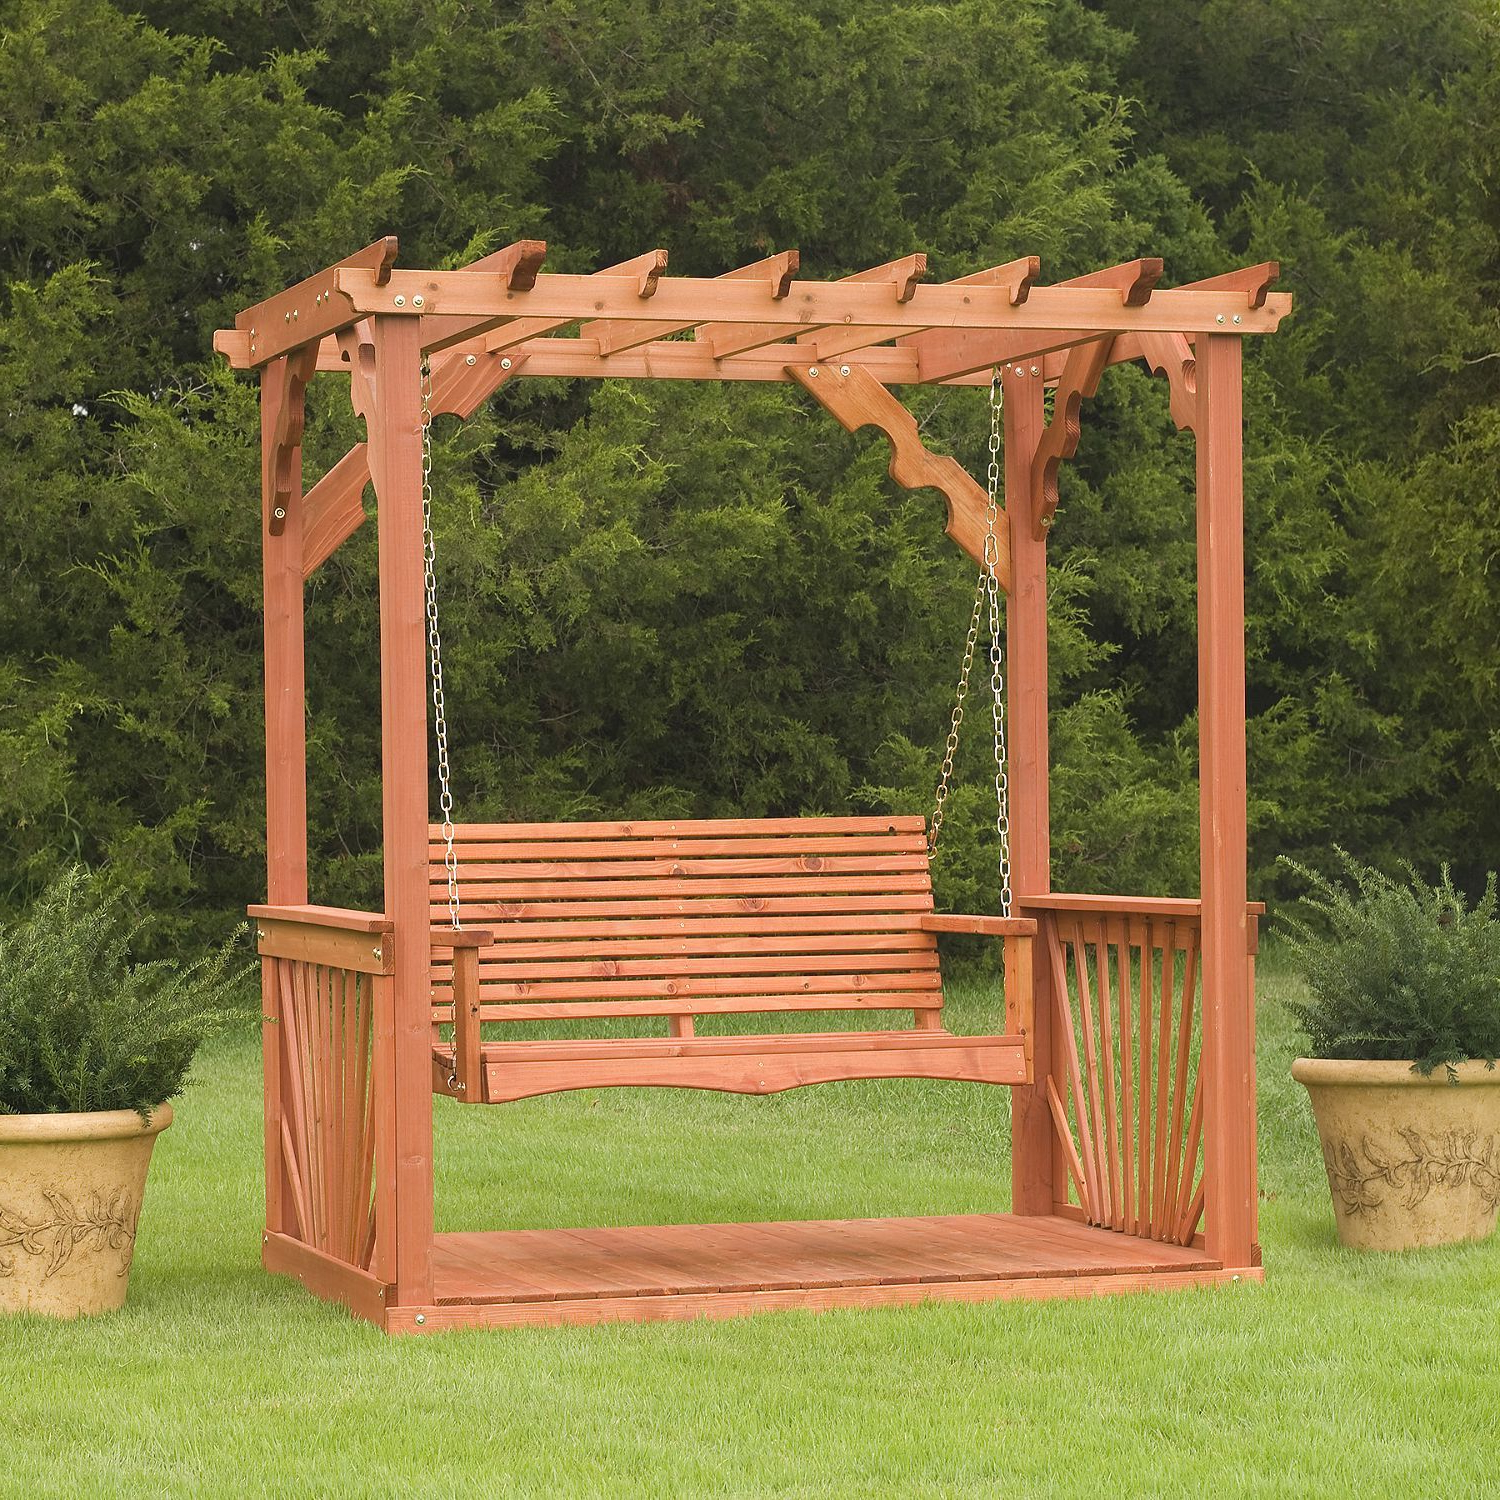 3 Person Natural Cedar Wood Outdoor Swings Intended For Famous Cedar Pergola Swing – Sam's Club $ (View 5 of 25)